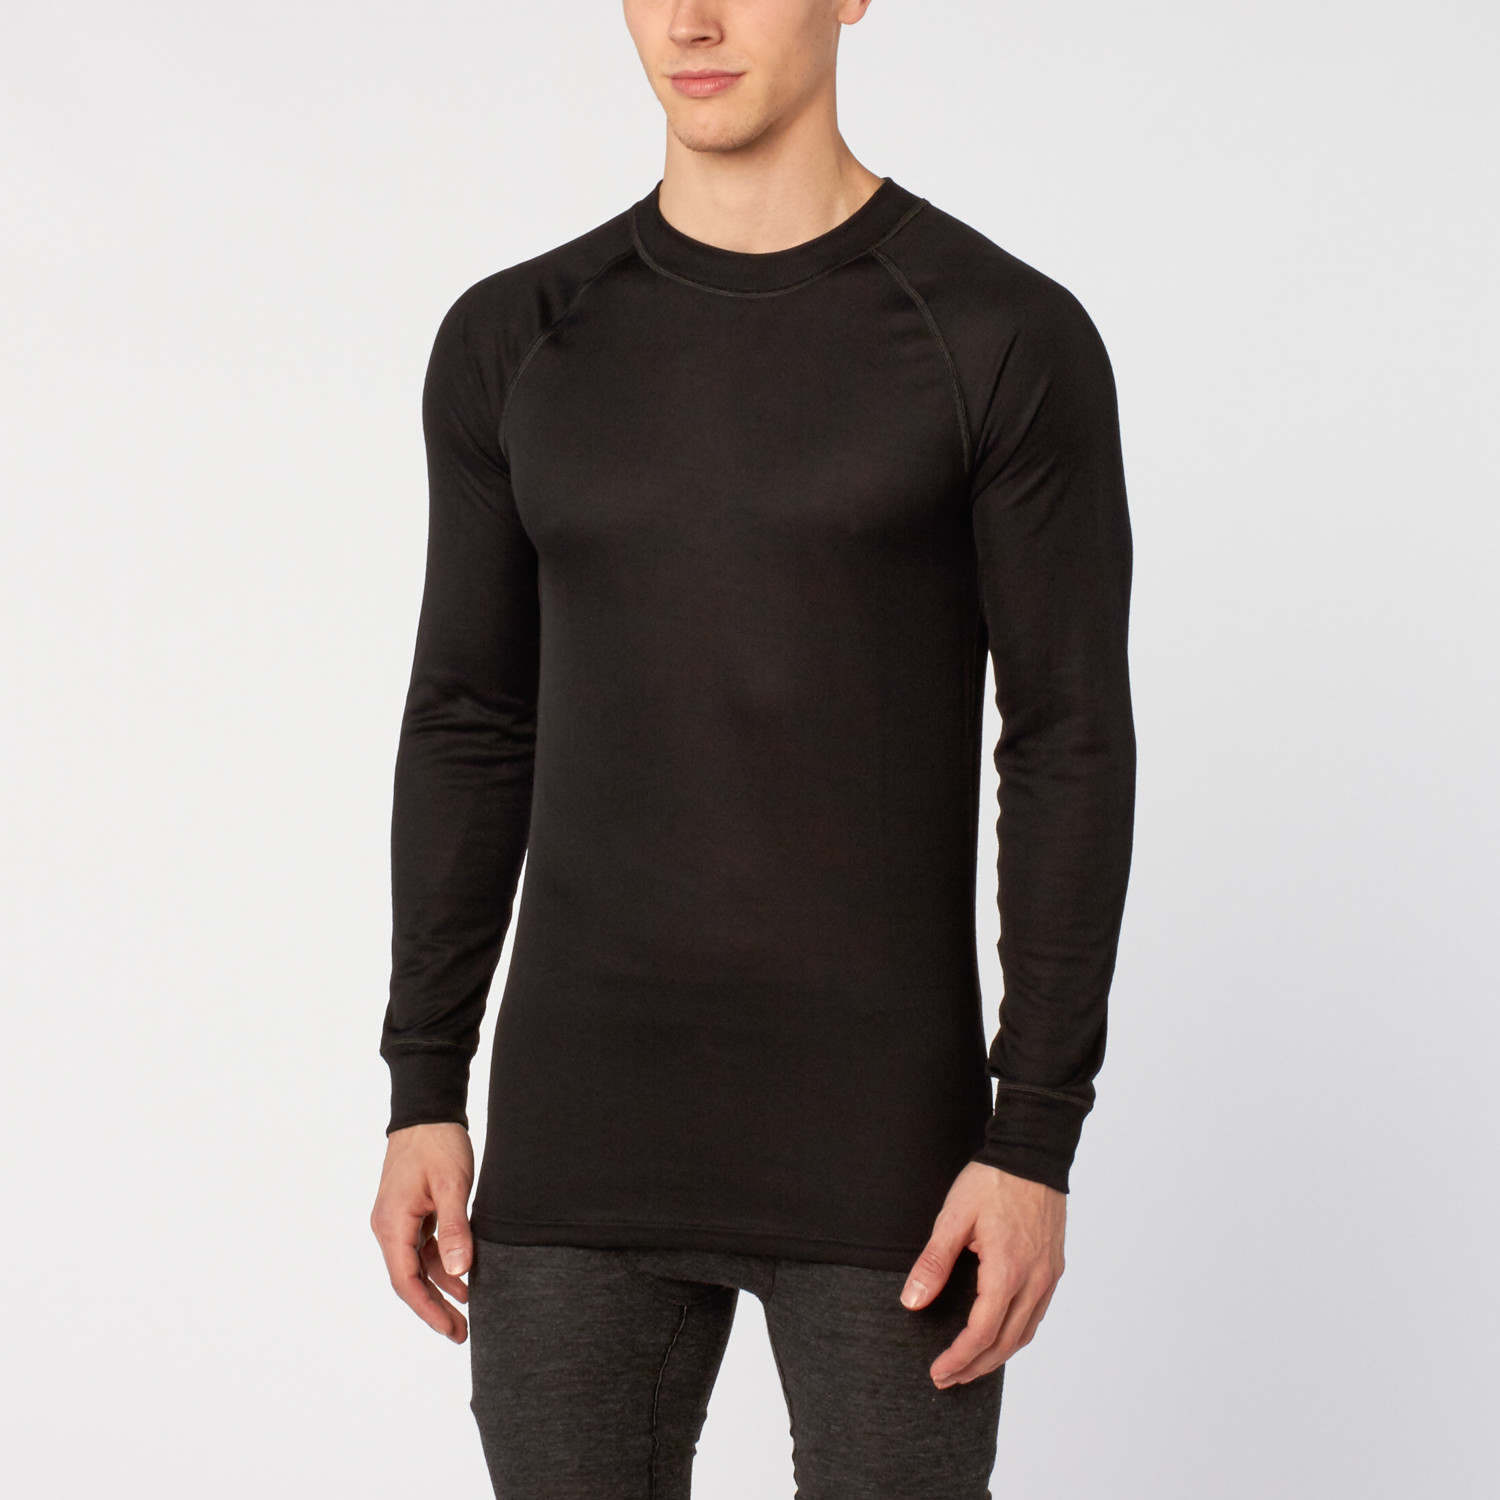 Thermowave Long Sleeve Shirt Black S Thermowave